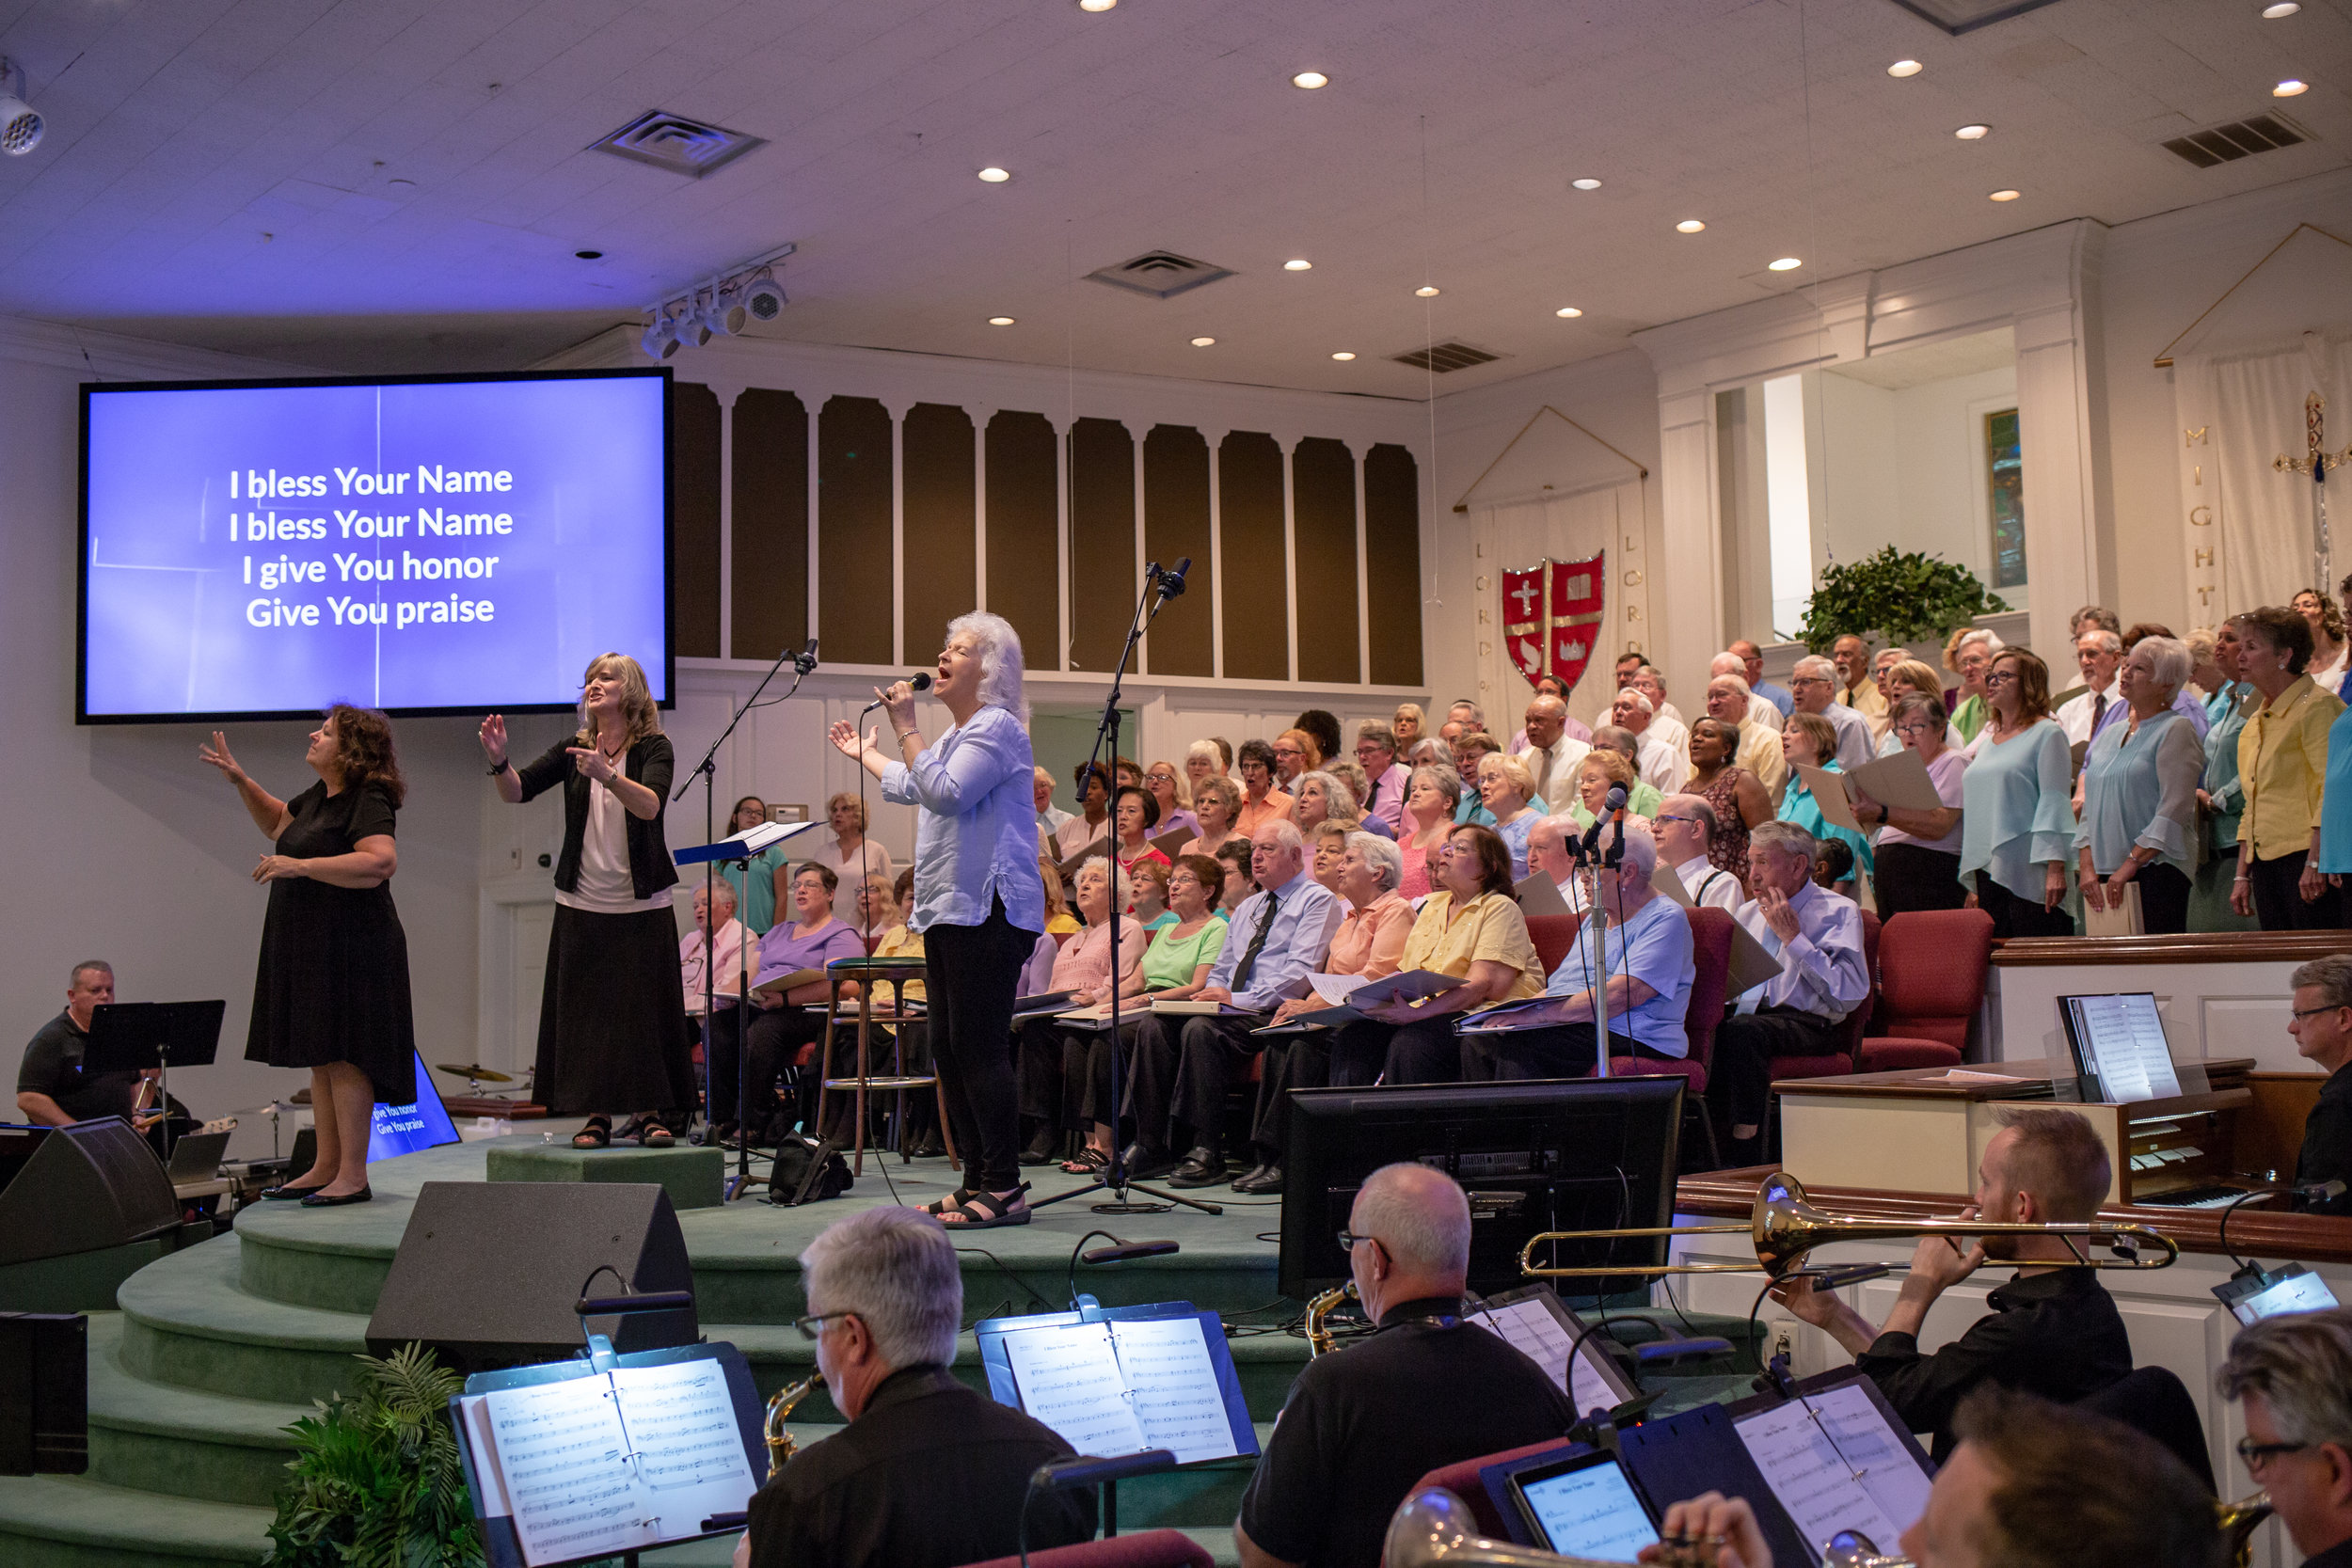 Warming up for a great night of music at our recent Gospel Concert…